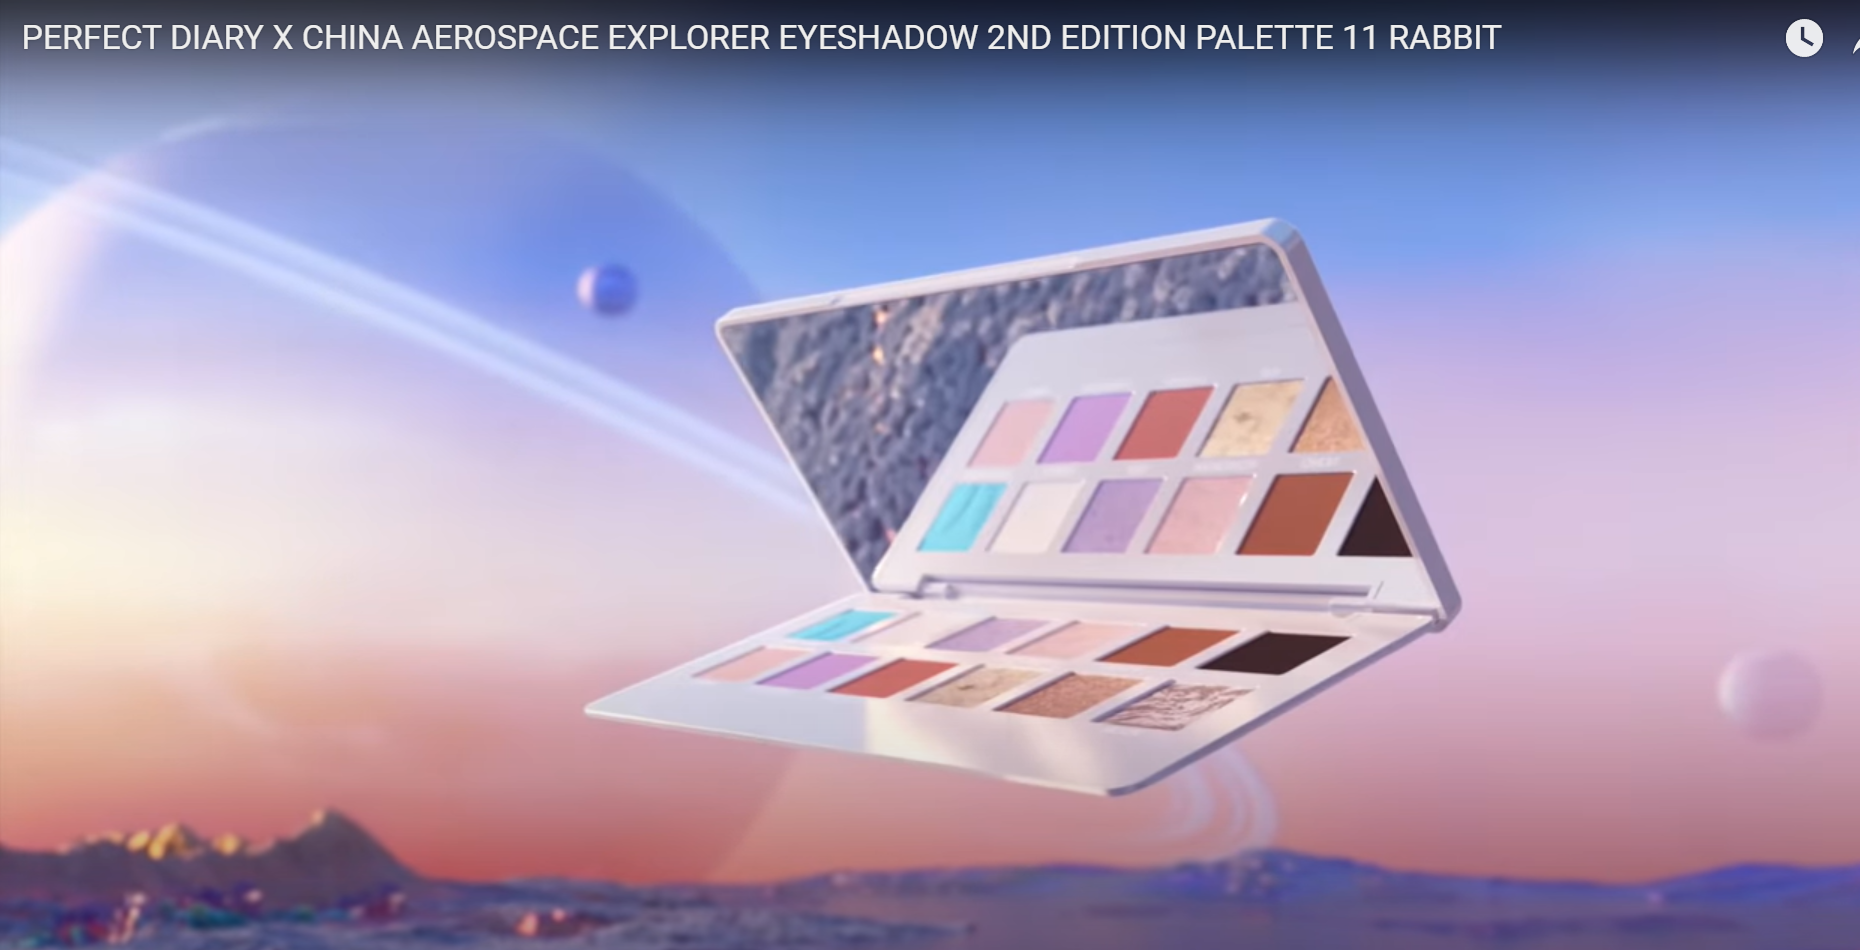 Perfect Diary Mid-Autumn Festival eyeshadow palette packaging from 2020.